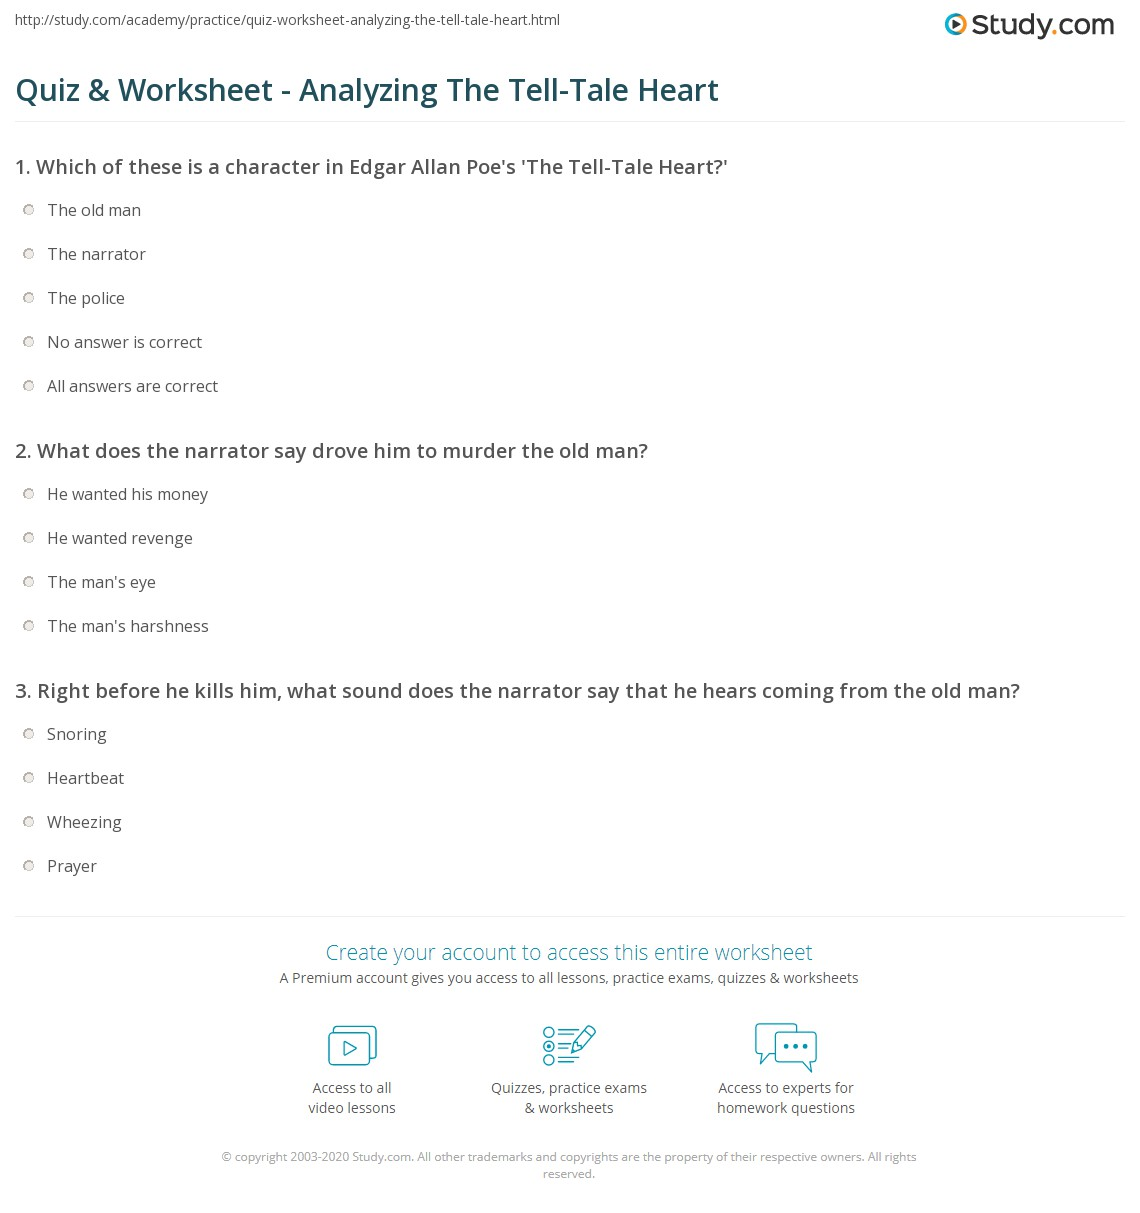 tell tale heart worksheet 2 The telltale heart 2 the telltale heart -edgar allen poe english grades 9 - 12 4 day lesson cycle + vocabulary development activities.